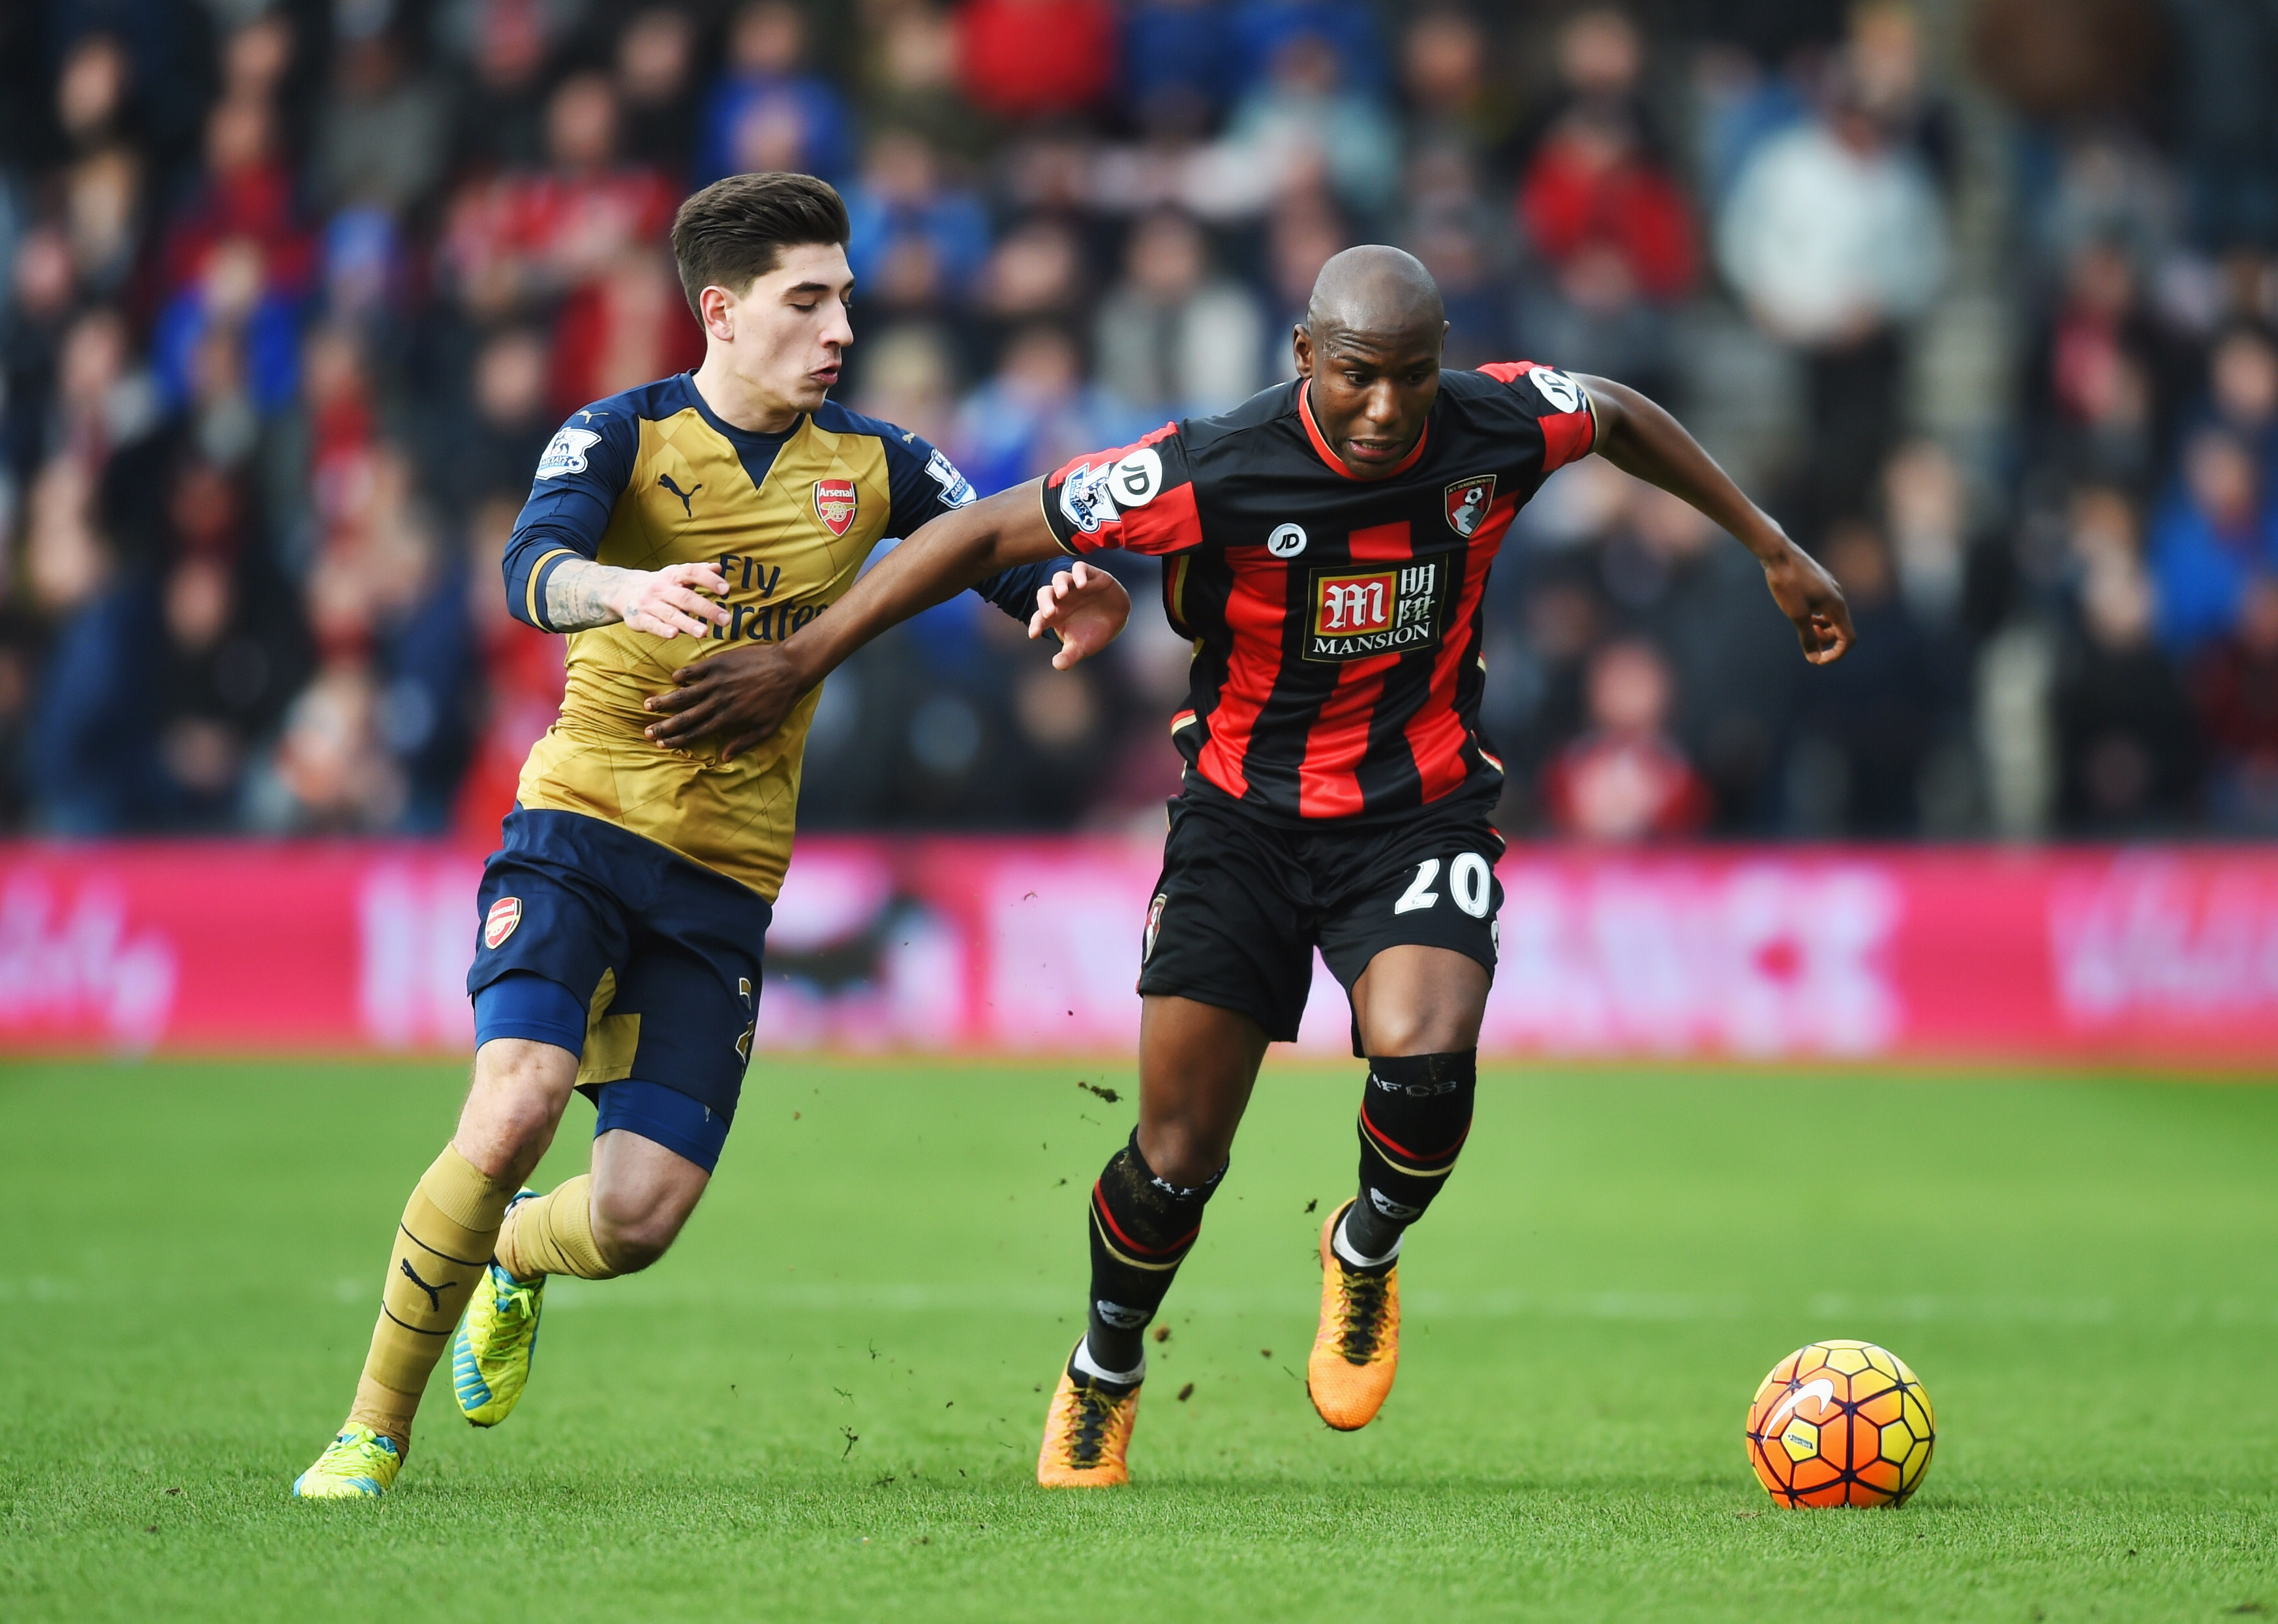 Arsenal: 3 Things Hector Bellerin Must Improve On This Season